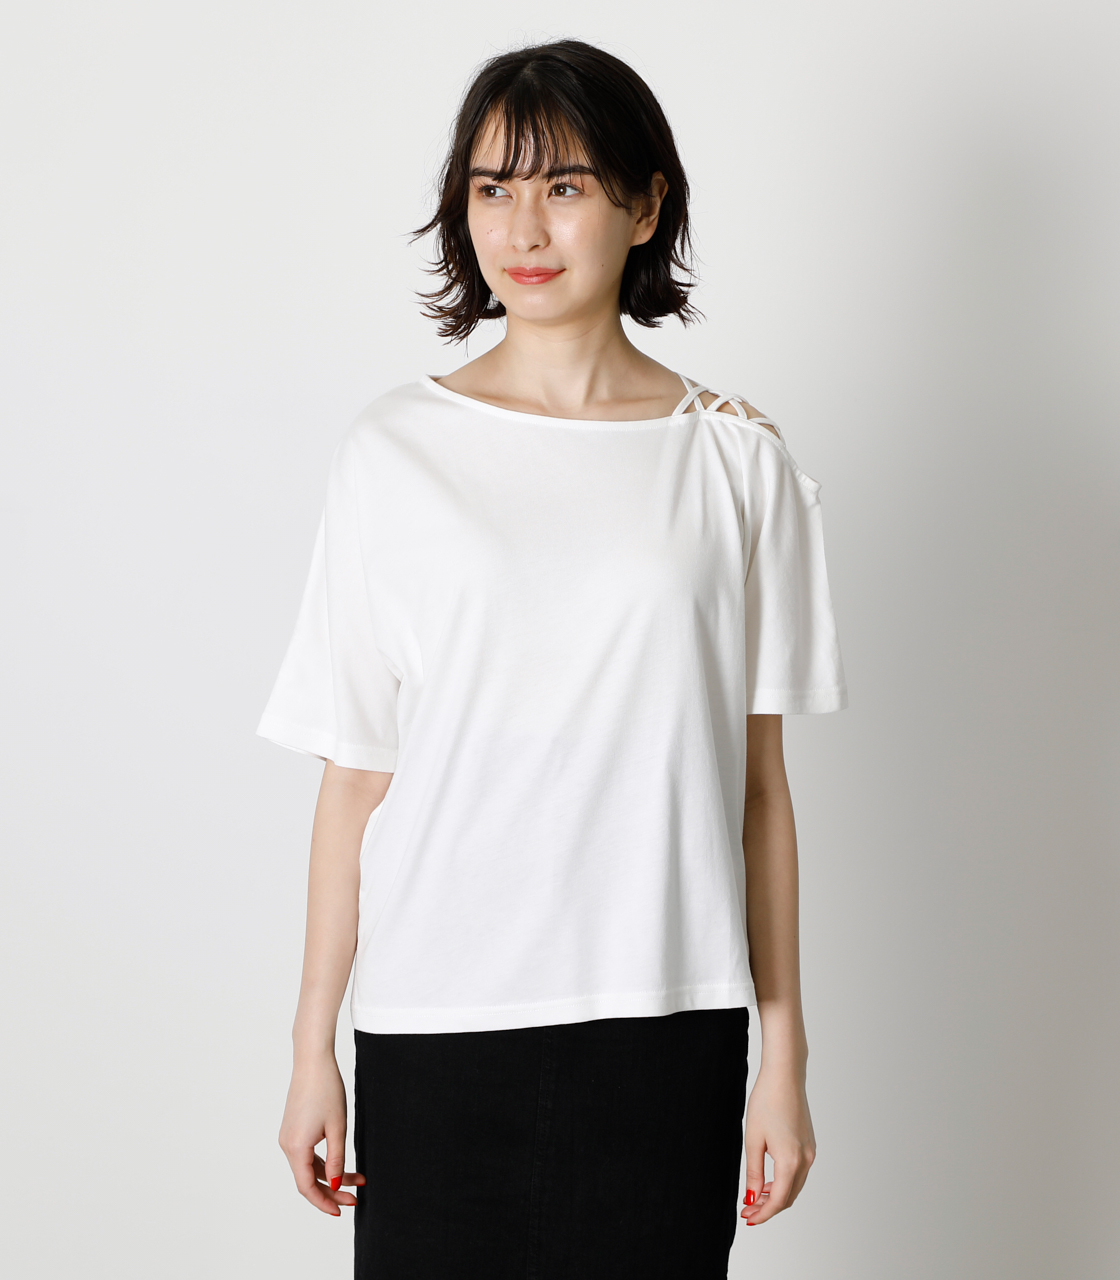 SHOULDER LACE UP TOPS/ショルダーレースアップトップス 詳細画像 O/WHT 4